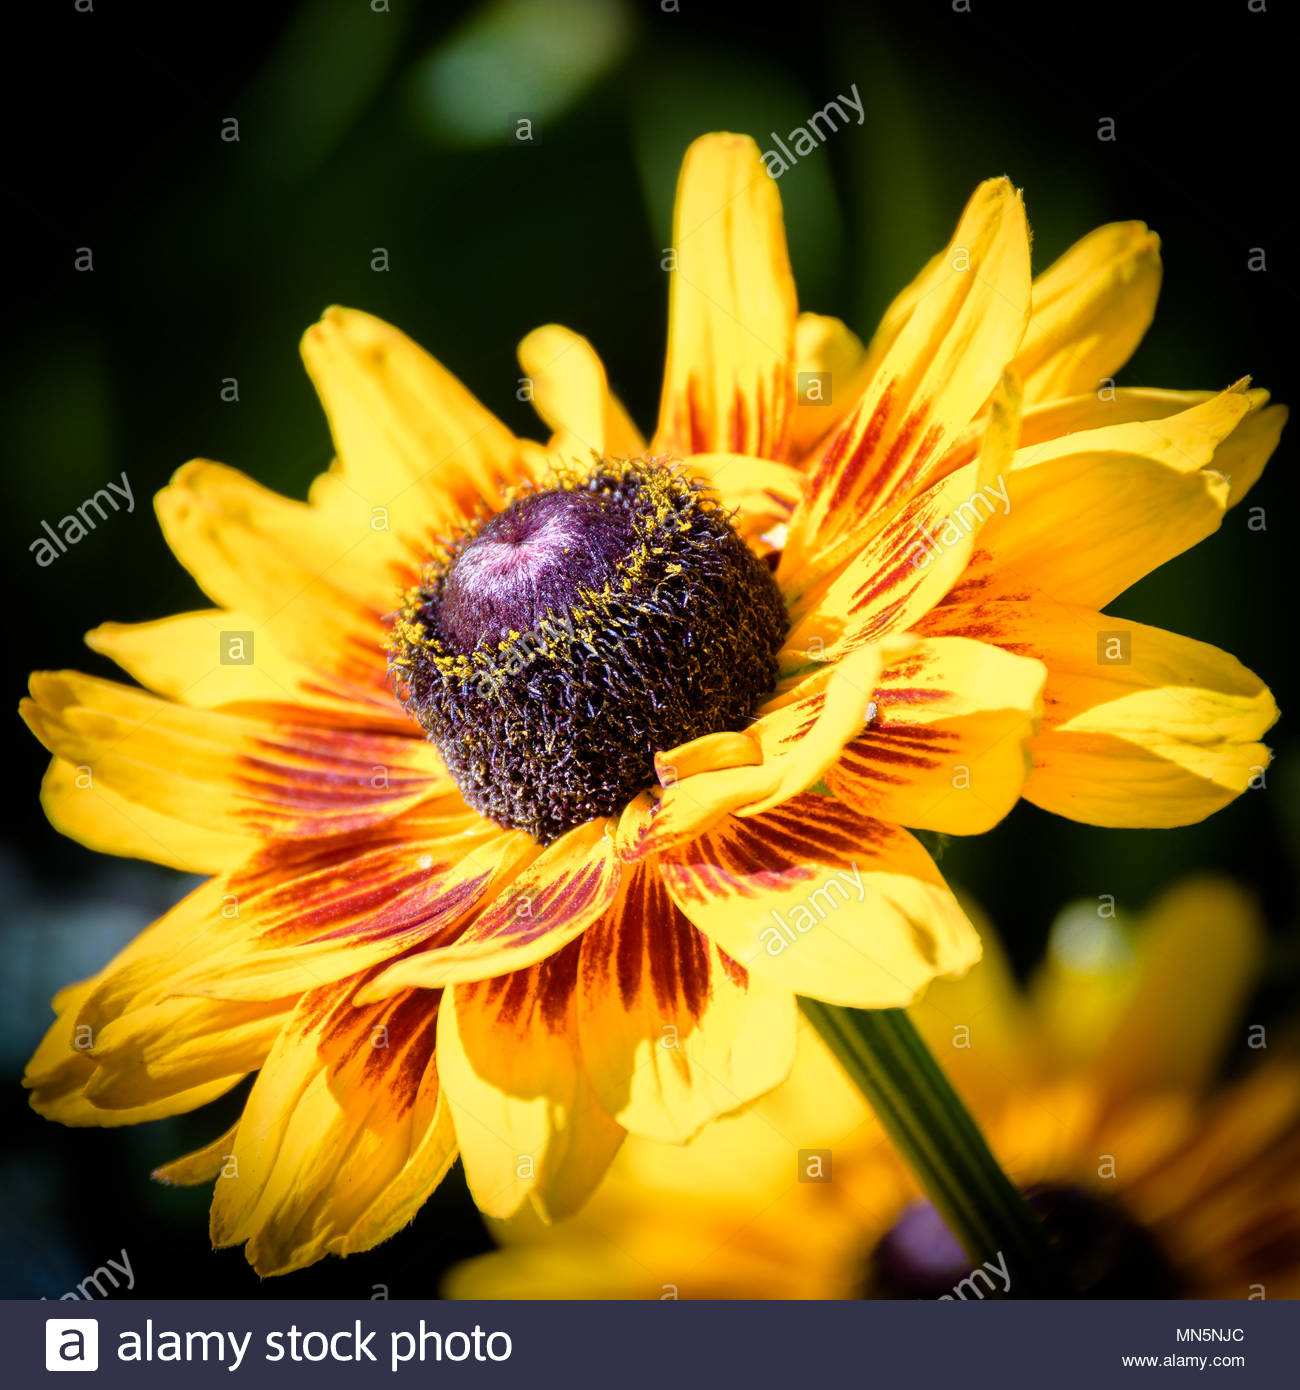 Black Eyed Susans A Vibrant Yellow Flower With A Purple Center